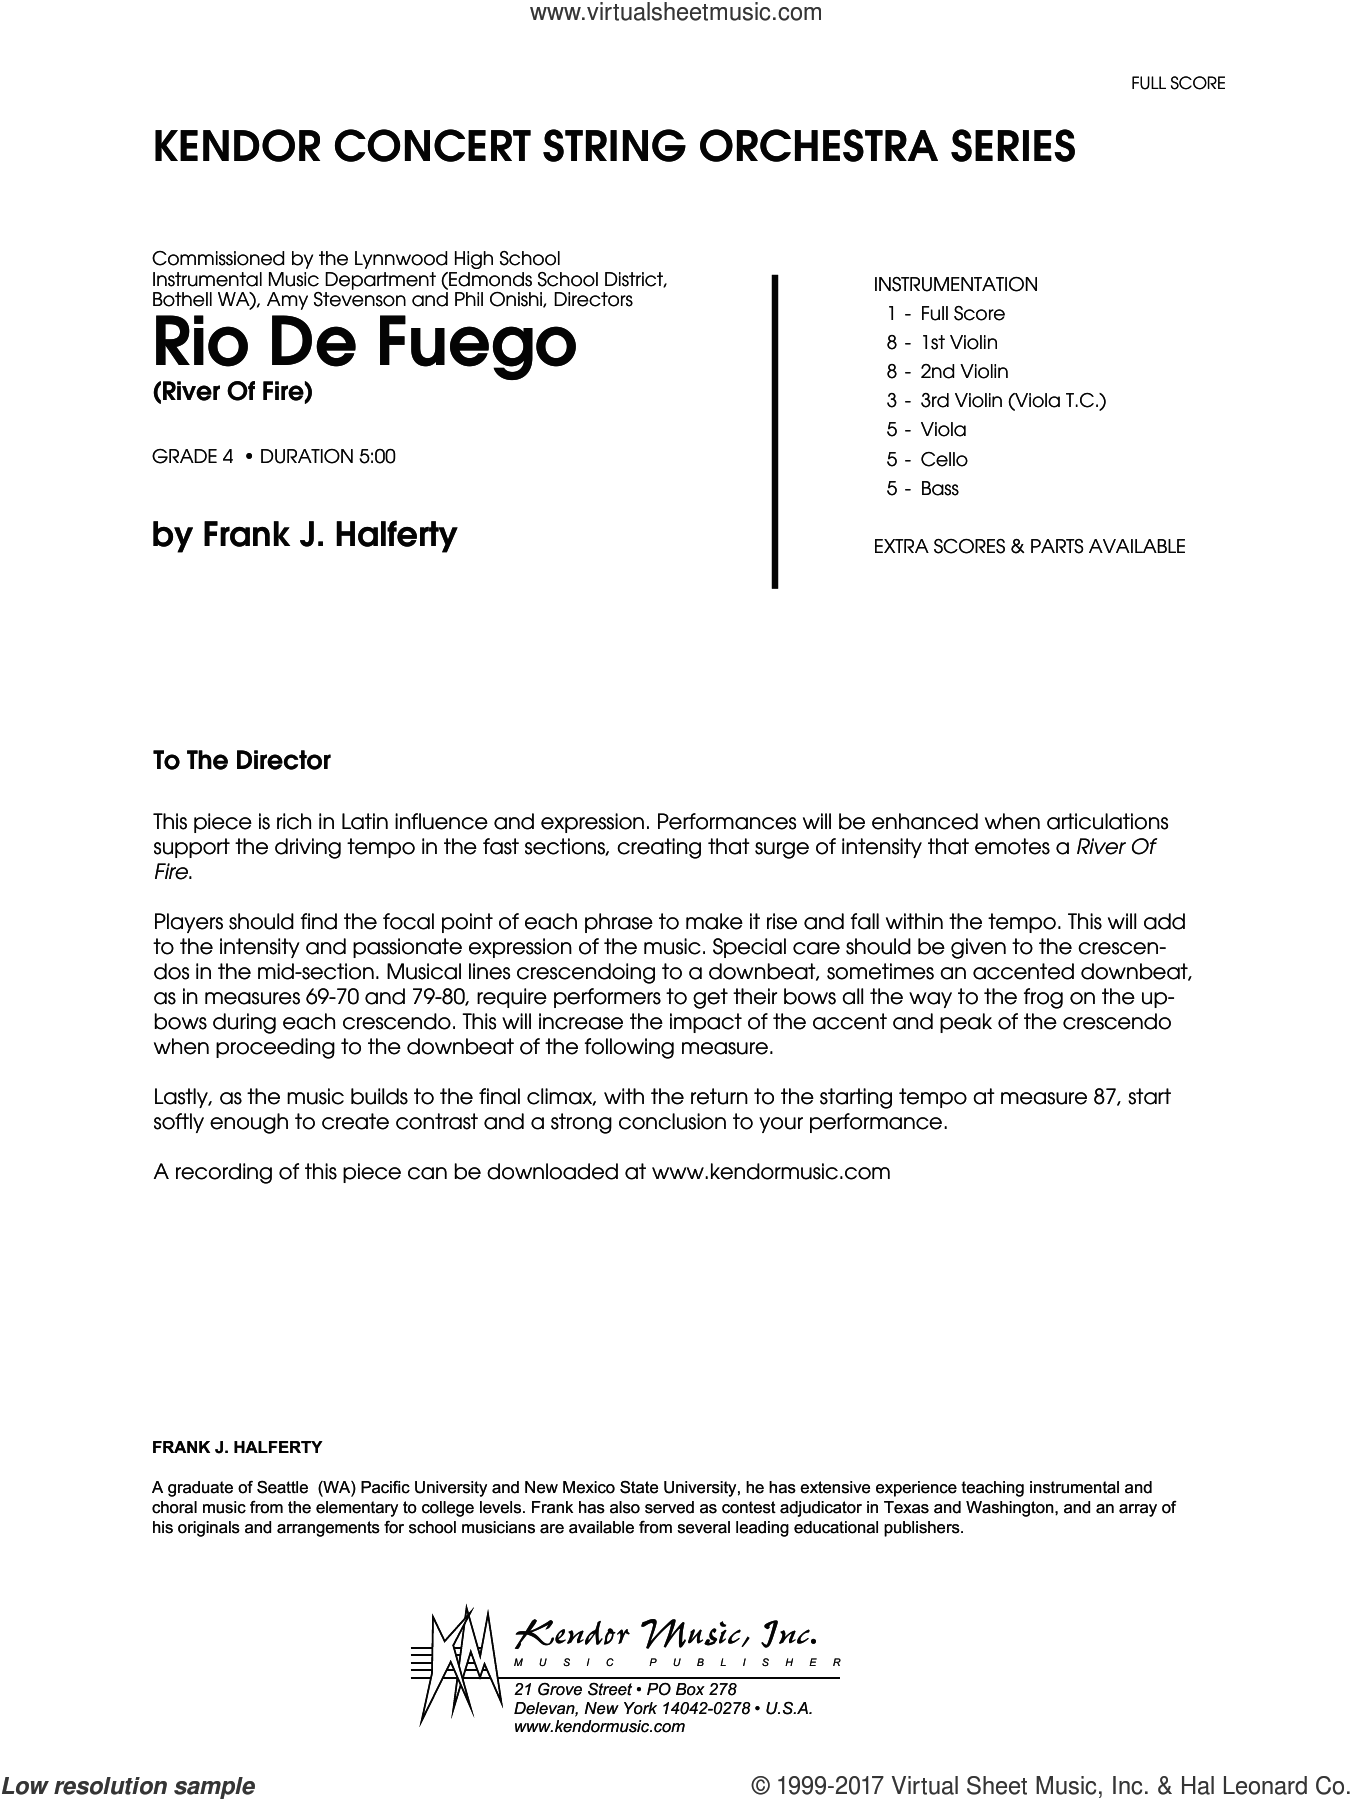 Rio De Fuego (River Of Fire) (COMPLETE) sheet music for orchestra by Frank J. Halferty, intermediate skill level